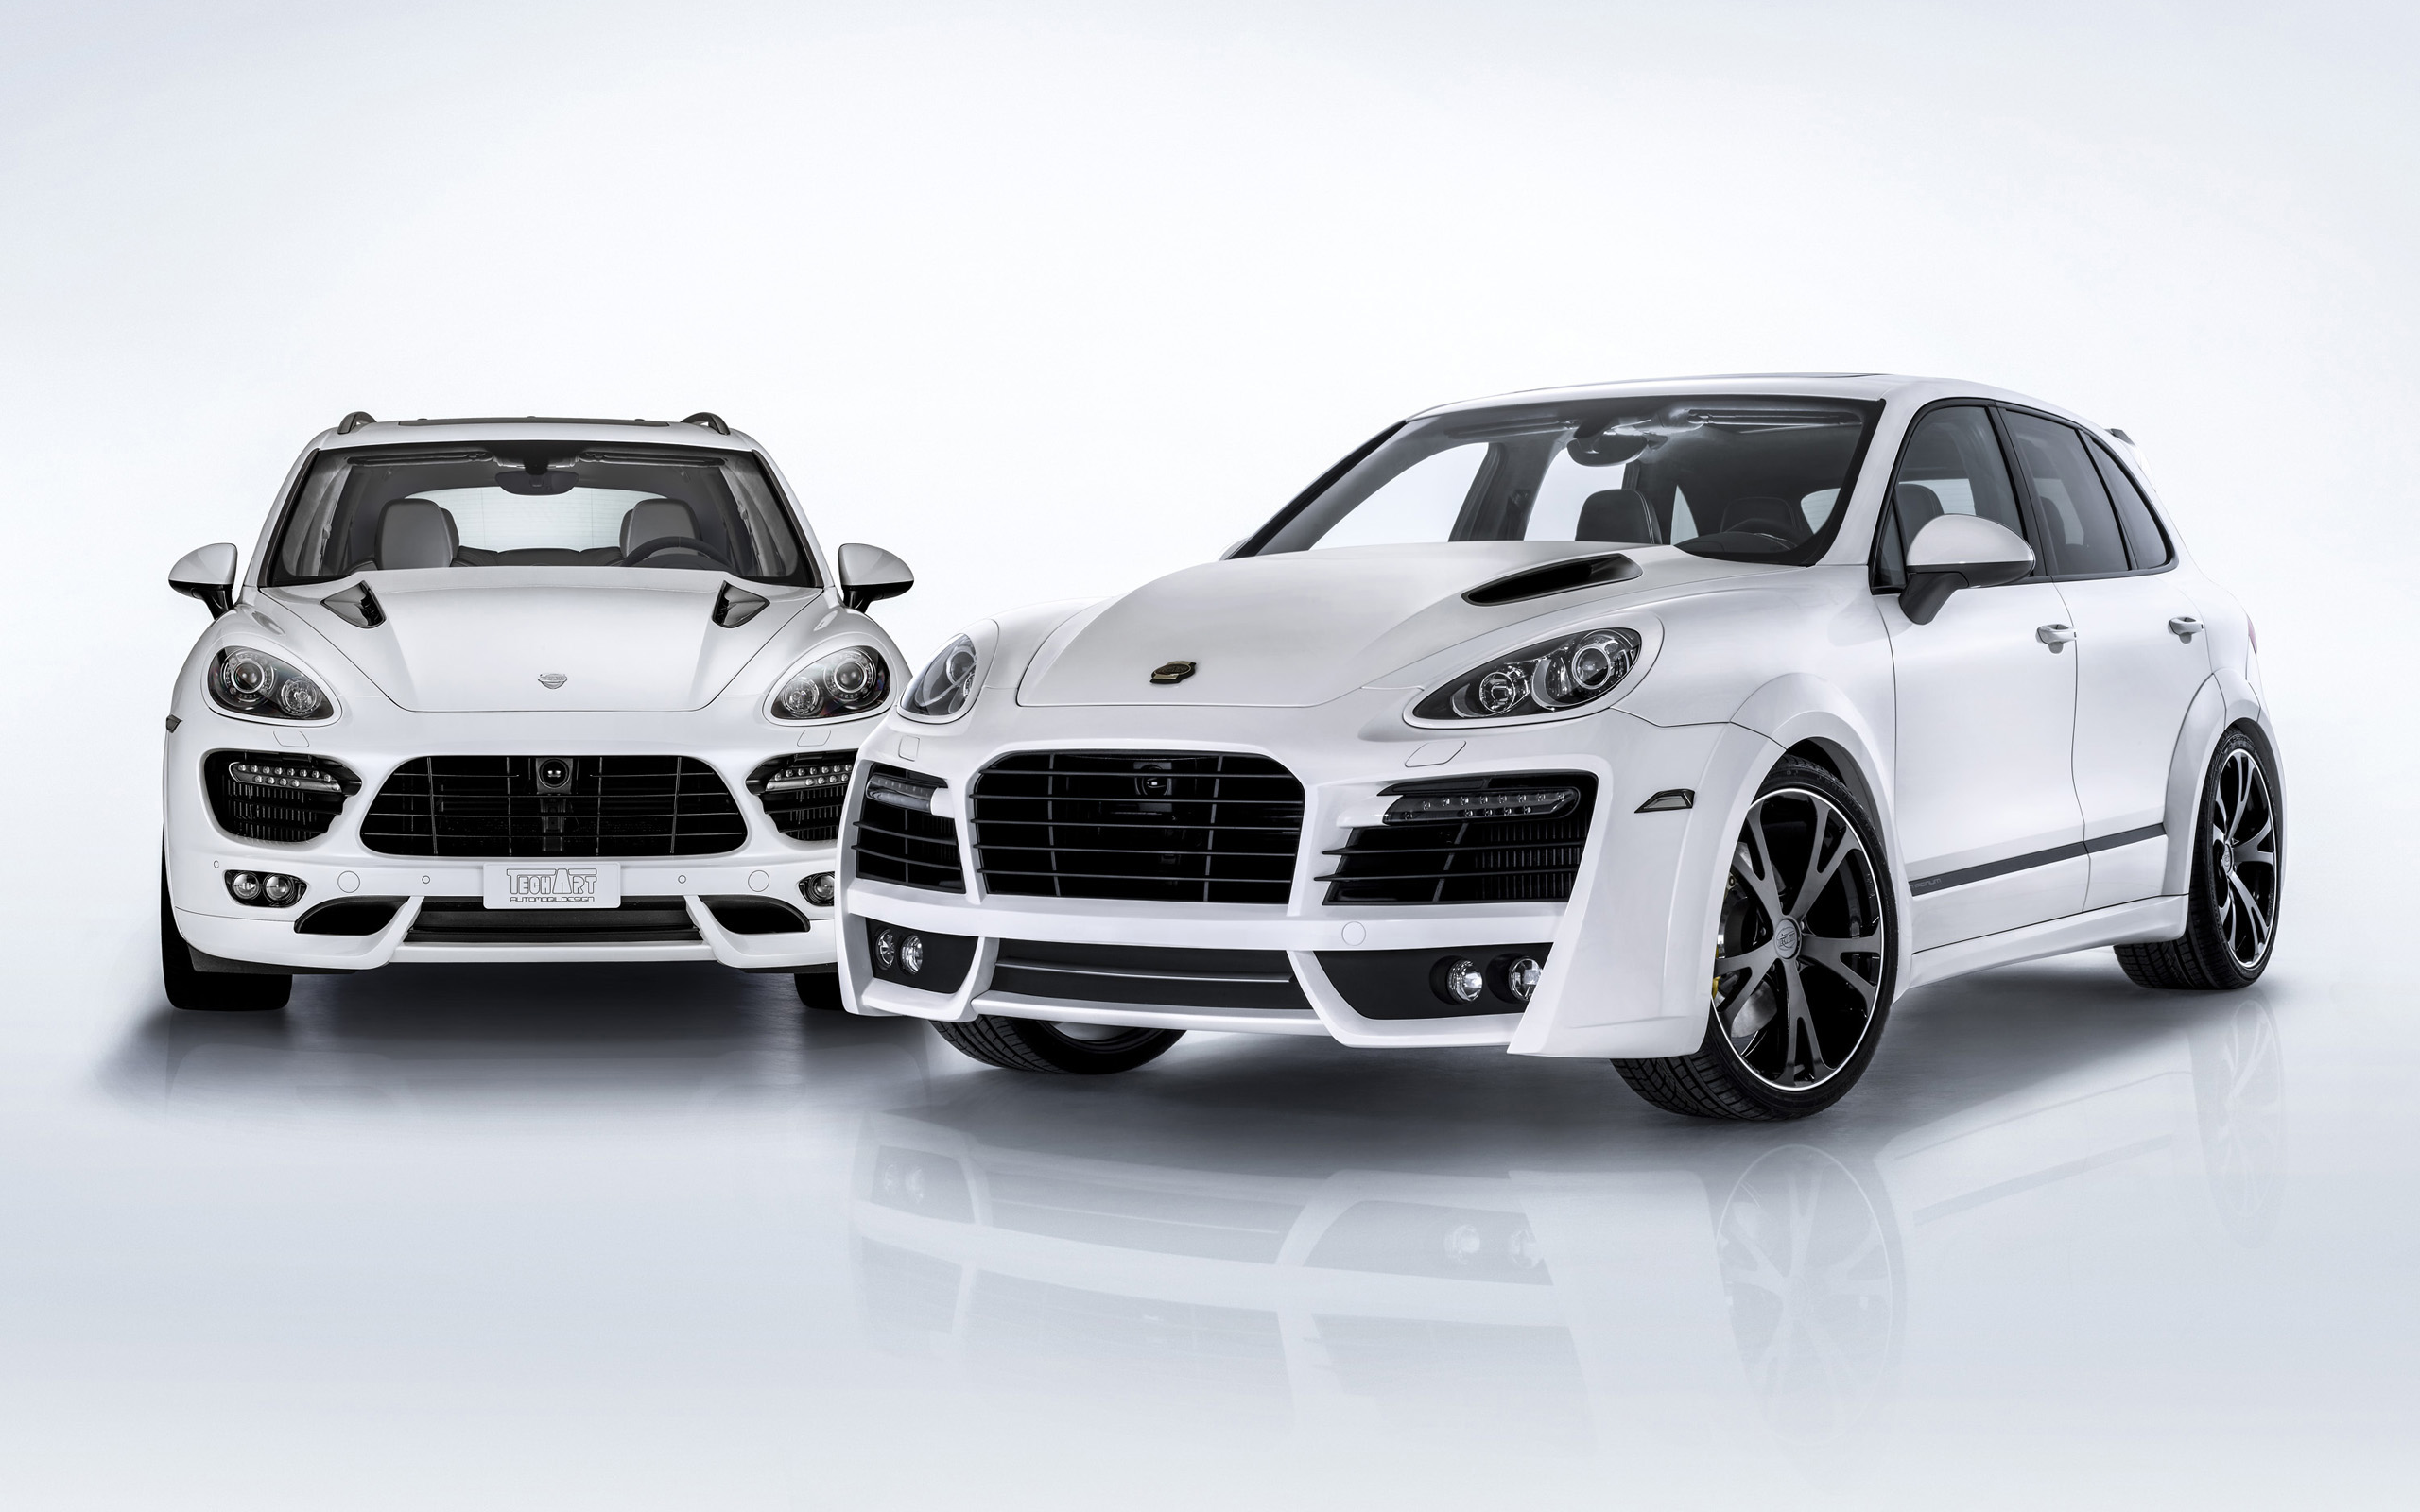 2013 TechArt Porsche Cayenne S Diesel Duo Wallpaper | HD Car